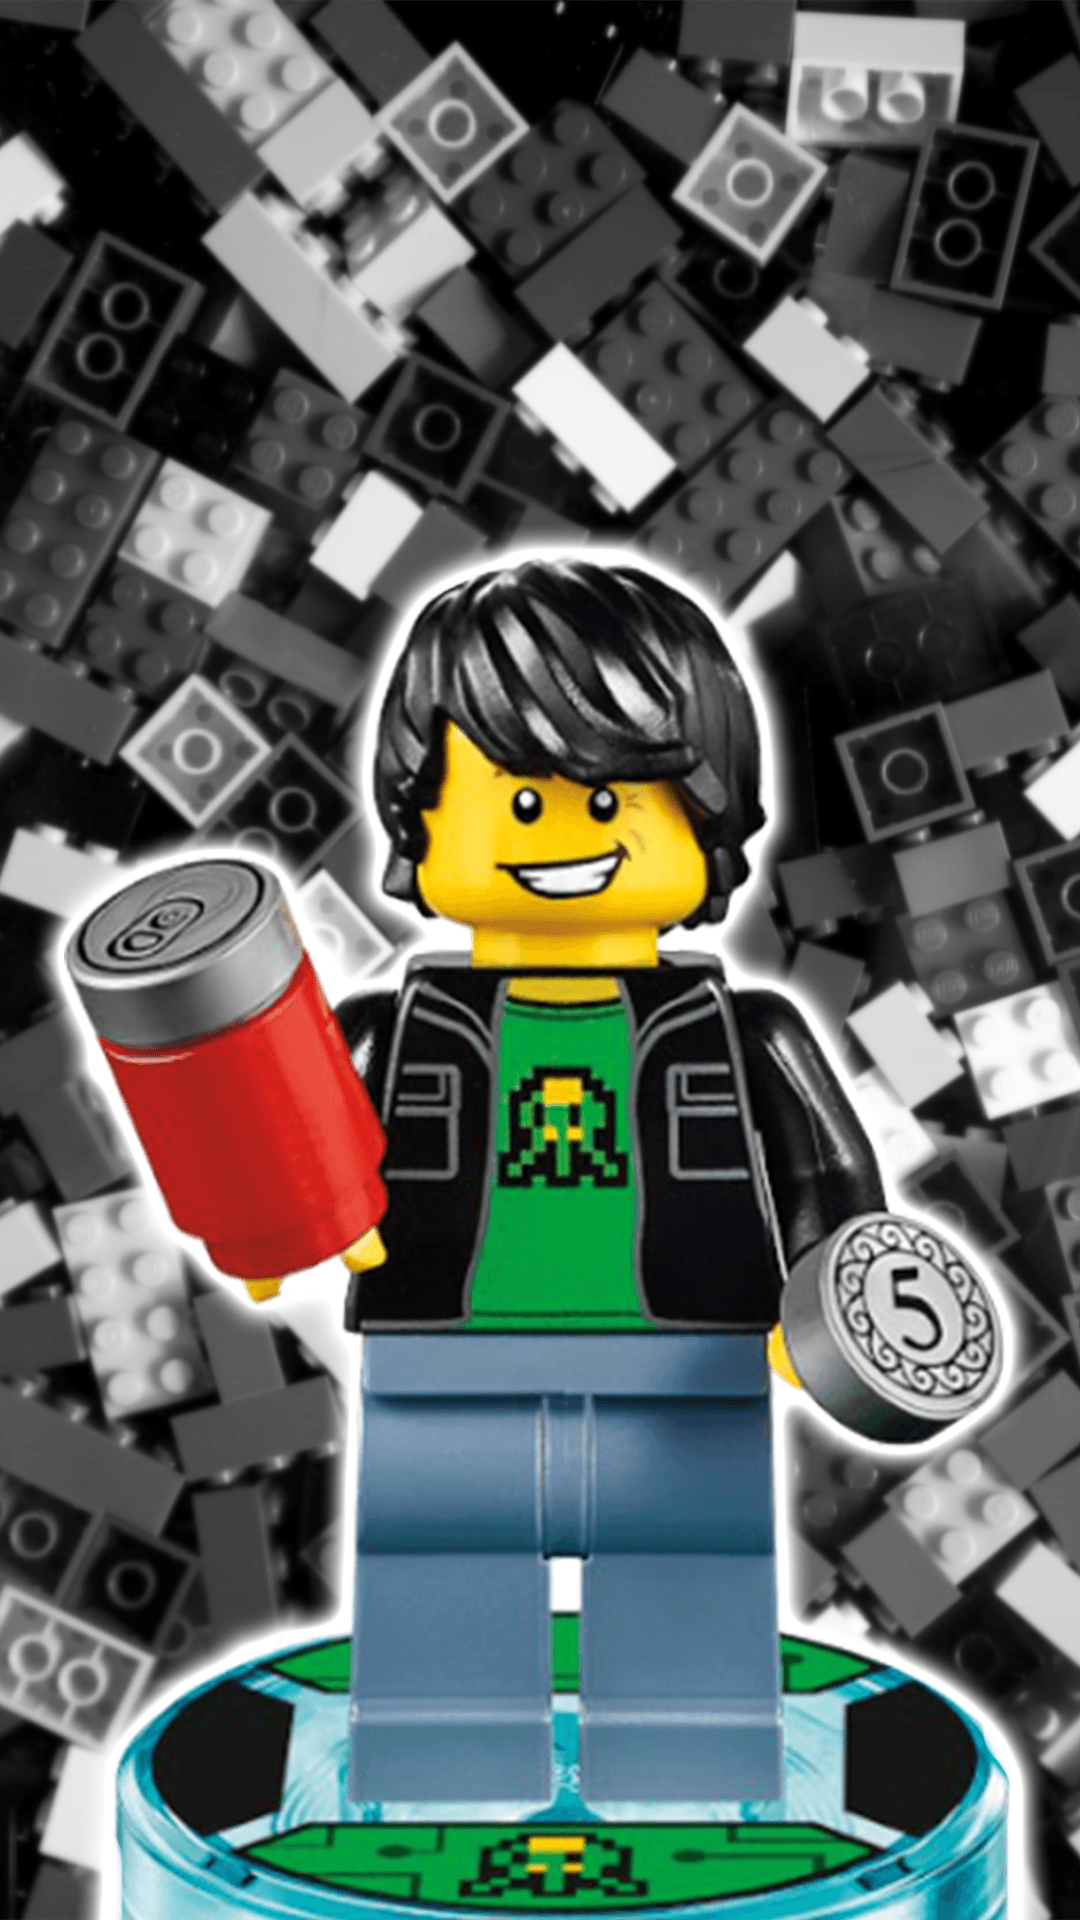 1080x1920 Lego Dimensions Wallpaper - Wave 4 Gallery - Bricks To Life